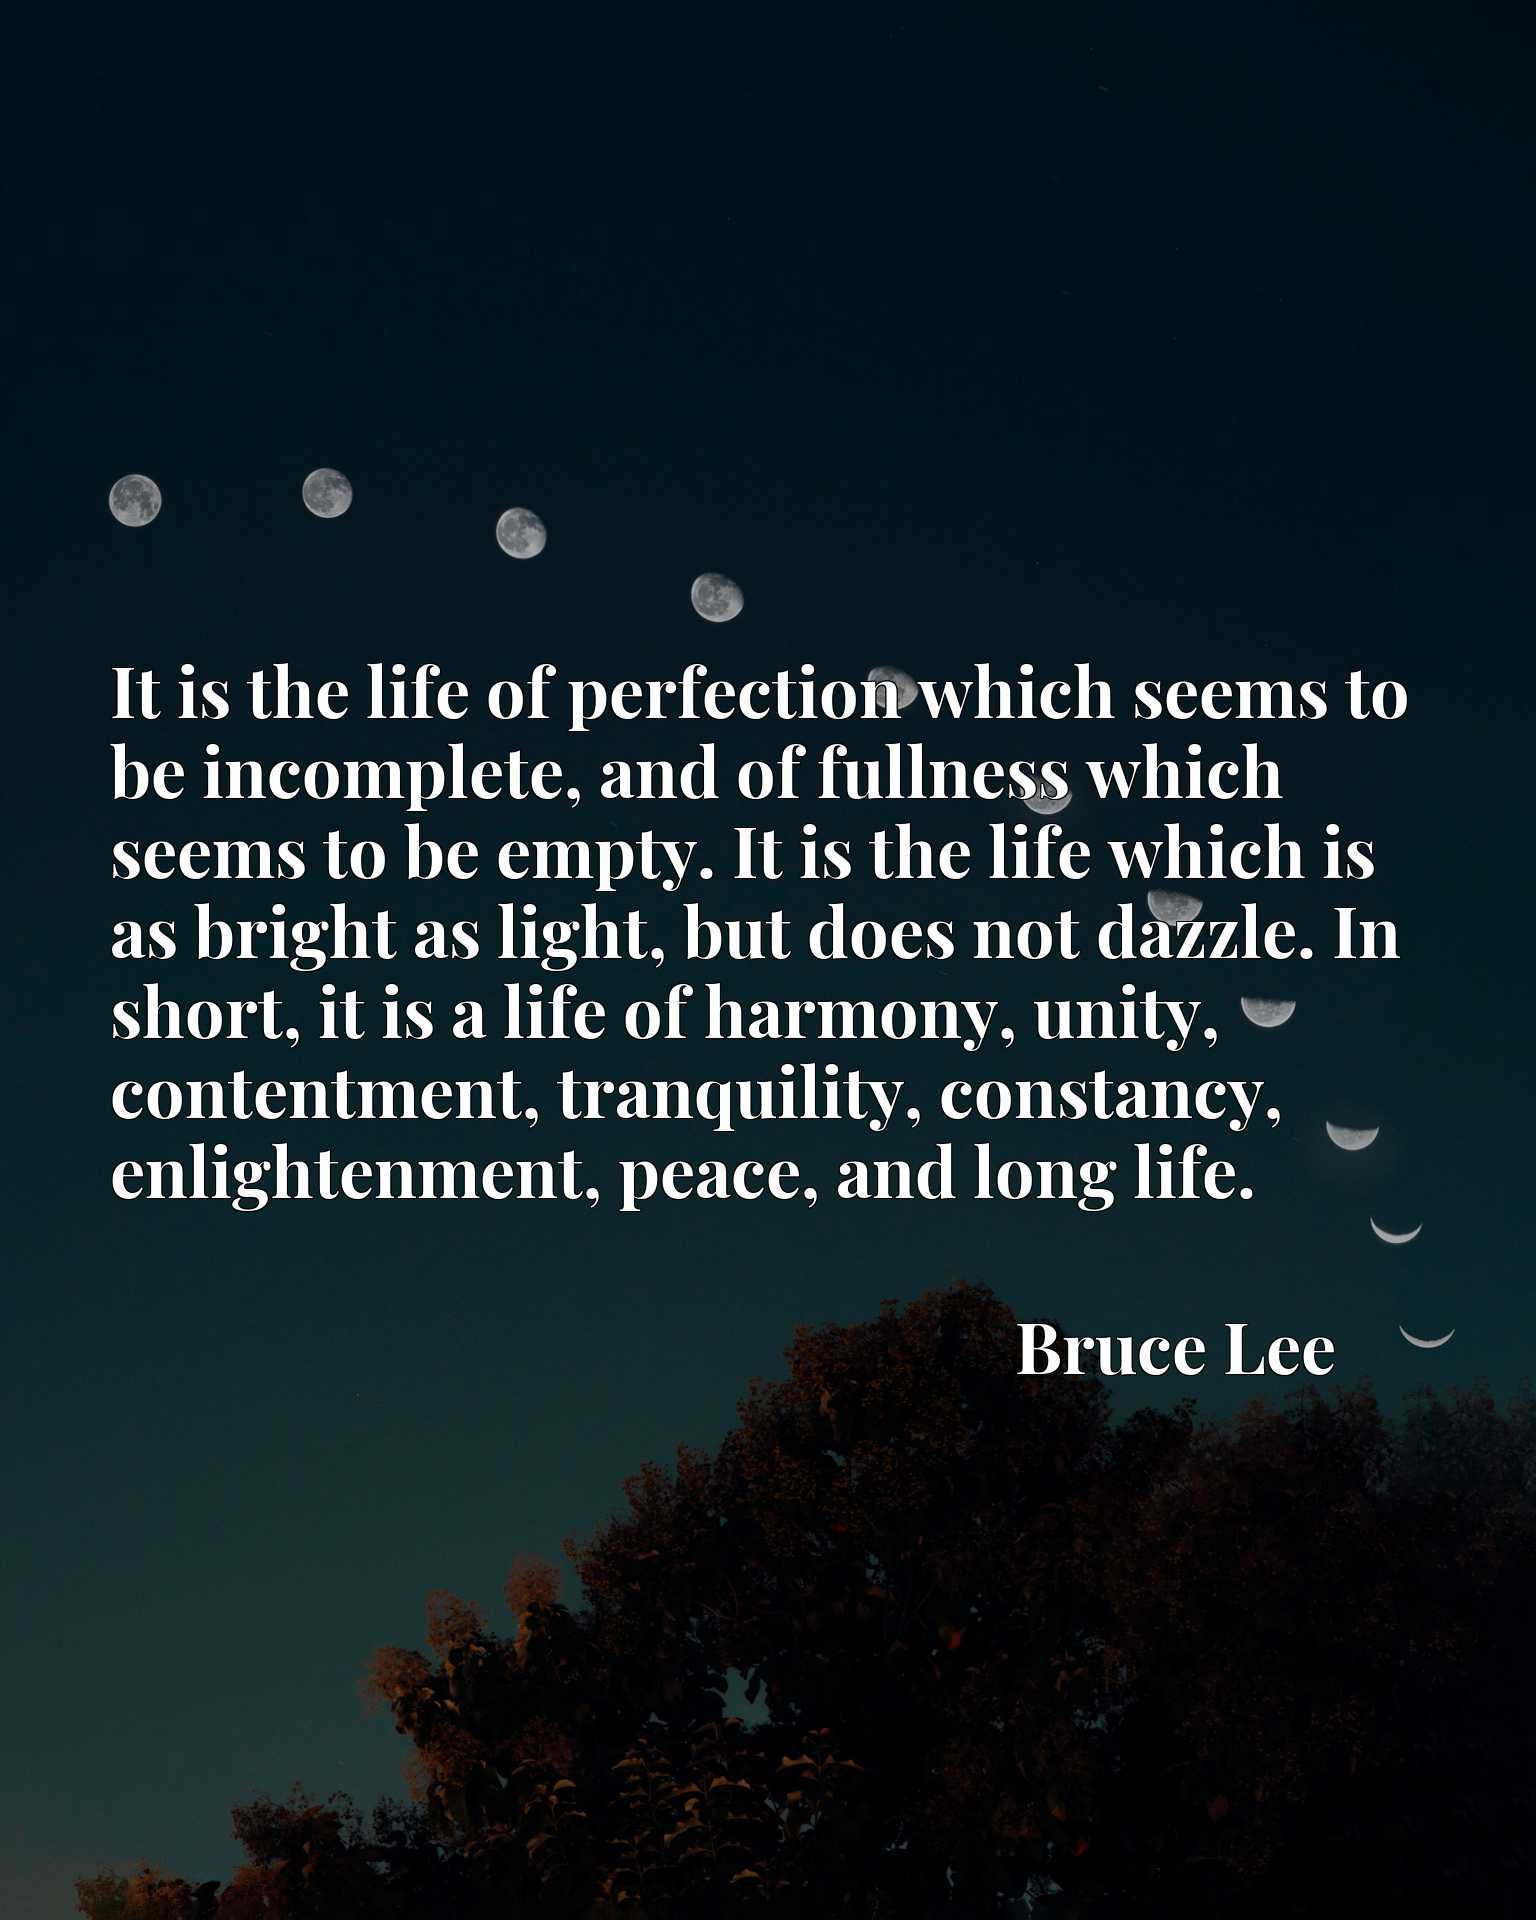 It is the life of perfection which seems to be incomplete, and of fullness which seems to be empty. It is the life which is as bright as light, but does not dazzle. In short, it is a life of harmony, unity, contentment, tranquility, constancy, enlightenment, peace, and long life.